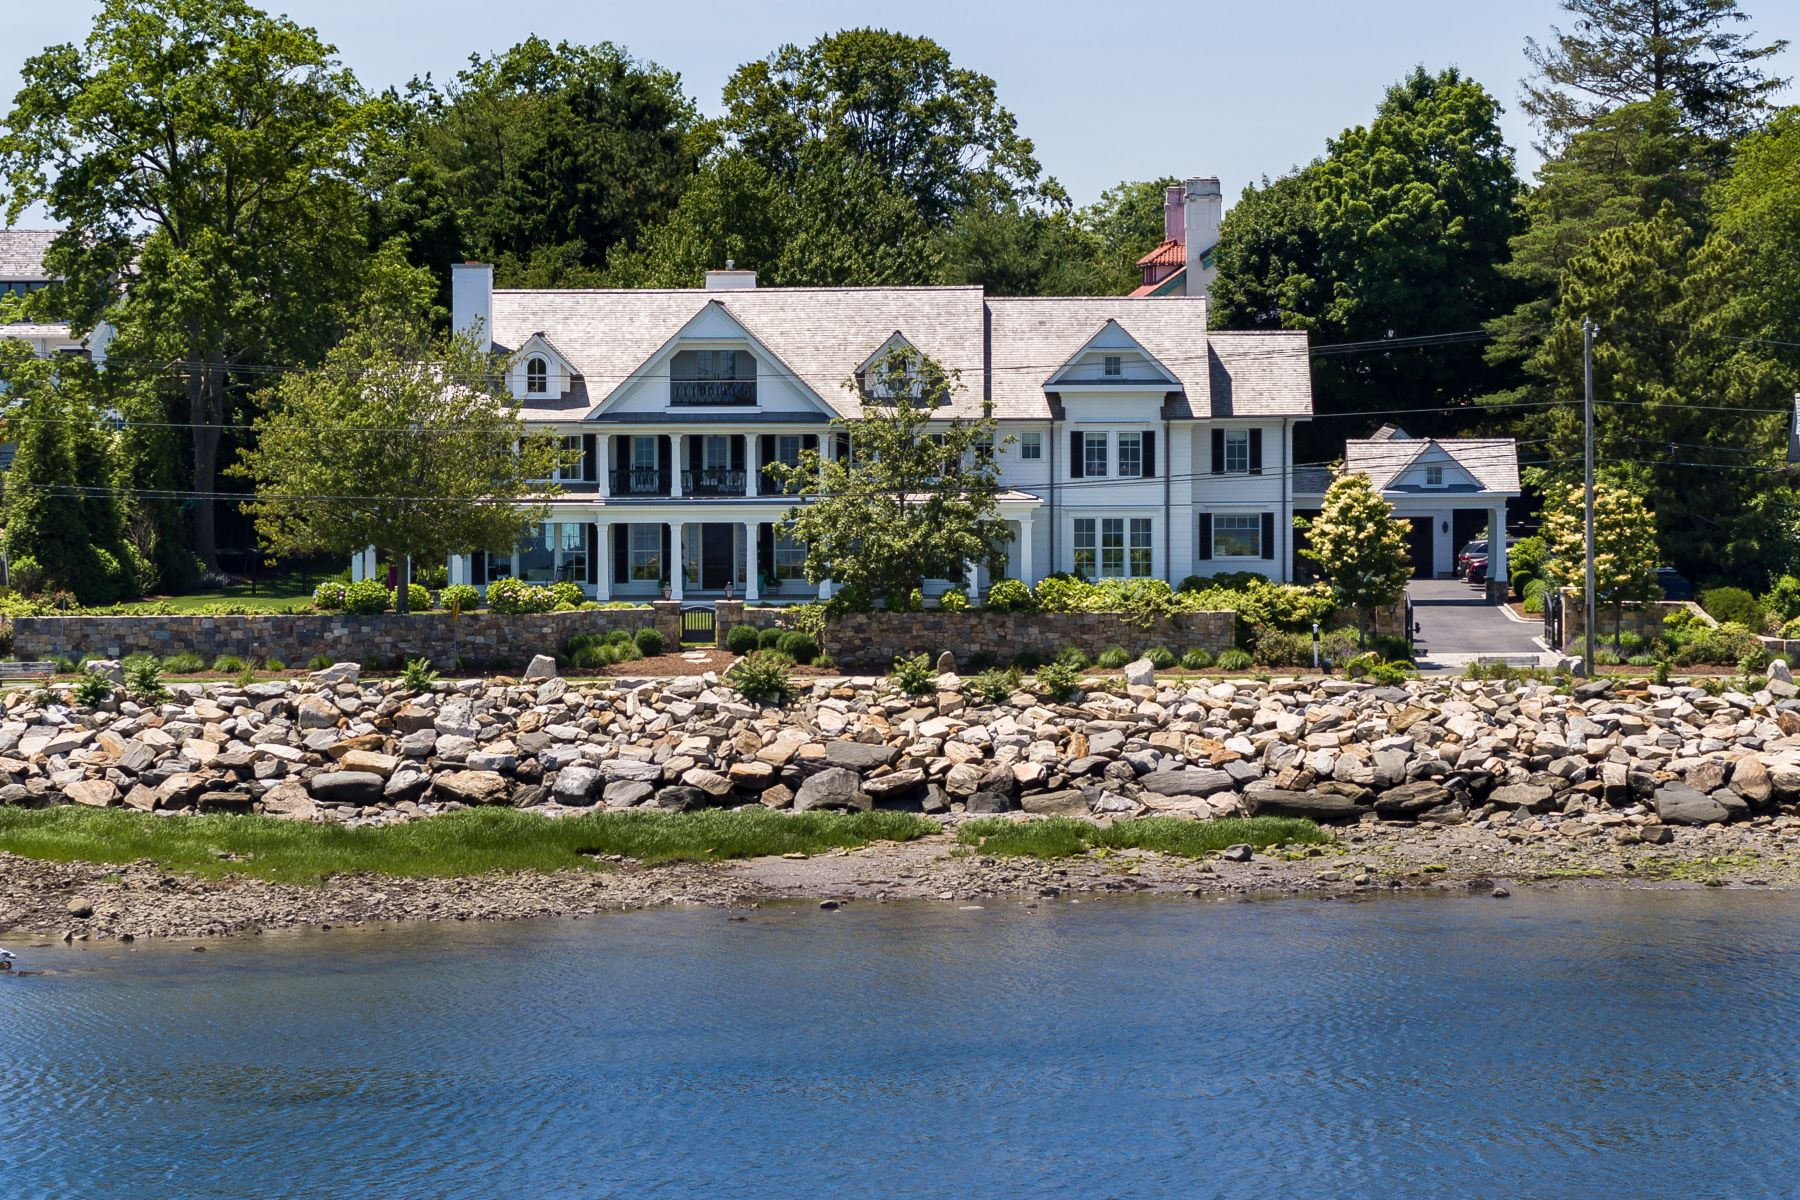 Single Family Homes for Sale at The Ultimate in Casually Elegant Living 264 Hillspoint Road Westport, Connecticut 06880 United States